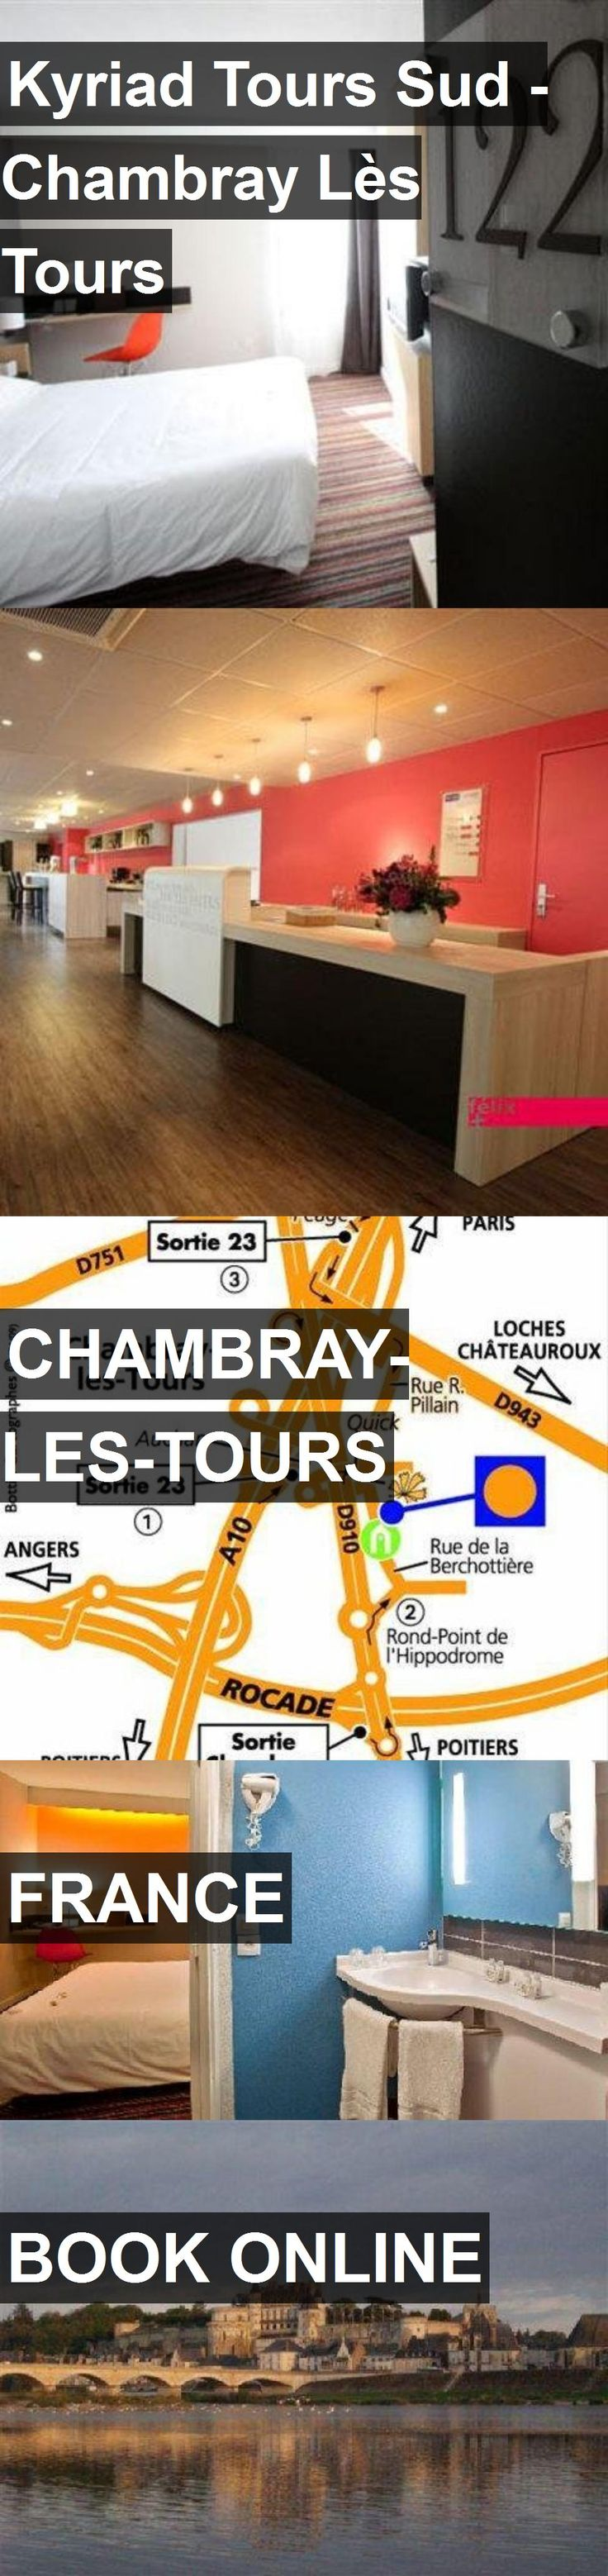 Hotel Kyriad Tours Sud - Chambray Lès Tours in Chambray-les-Tours, France. For more information, photos, reviews and best prices please follow the link. #France #Chambray-les-Tours #travel #vacation #hotel